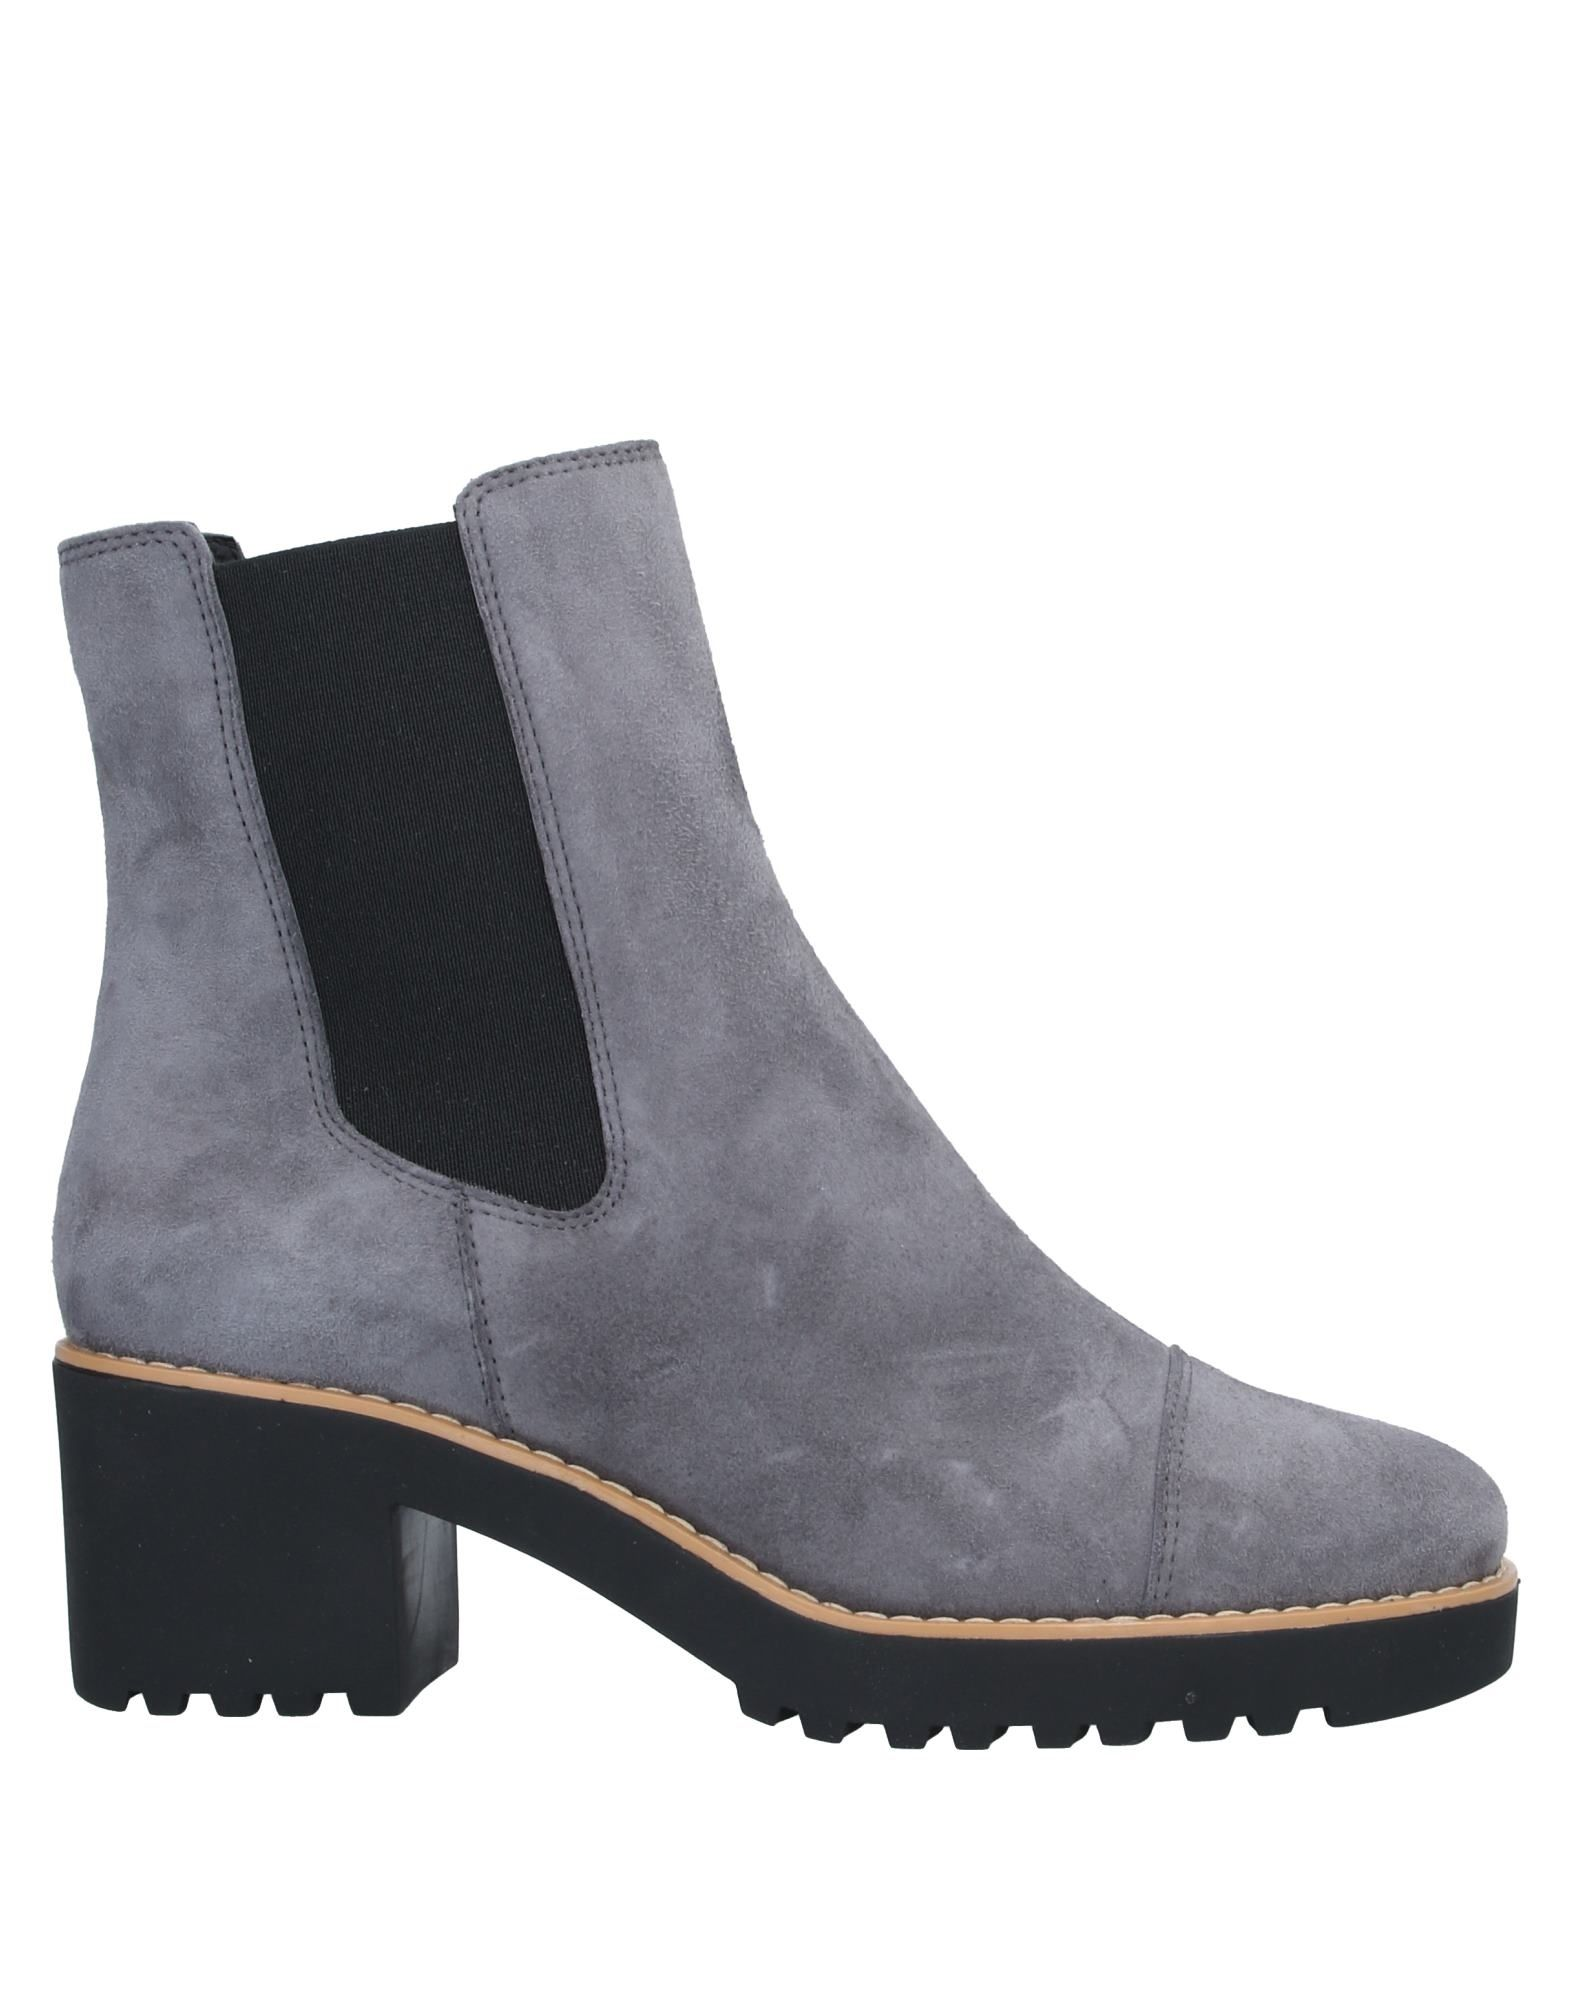 HOGAN Ankle boots. suede effect, no appliqués, solid color, elasticized gores, round toeline, square heel, leather lining, rubber sole, contains non-textile parts of animal origin. Soft Leather